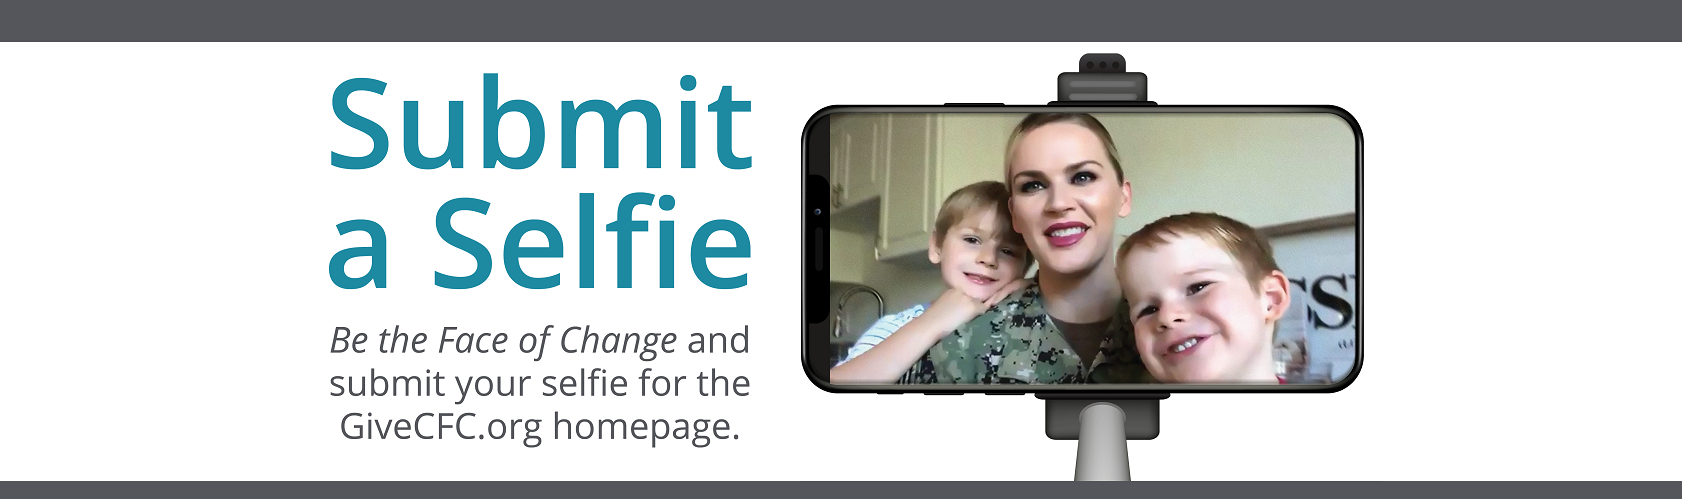 "Banner with text ""Submit a Selfie Be the Face of Change and submit your selfie for the GiveCFC.org homepage"" picture of a Navy member and her two children"